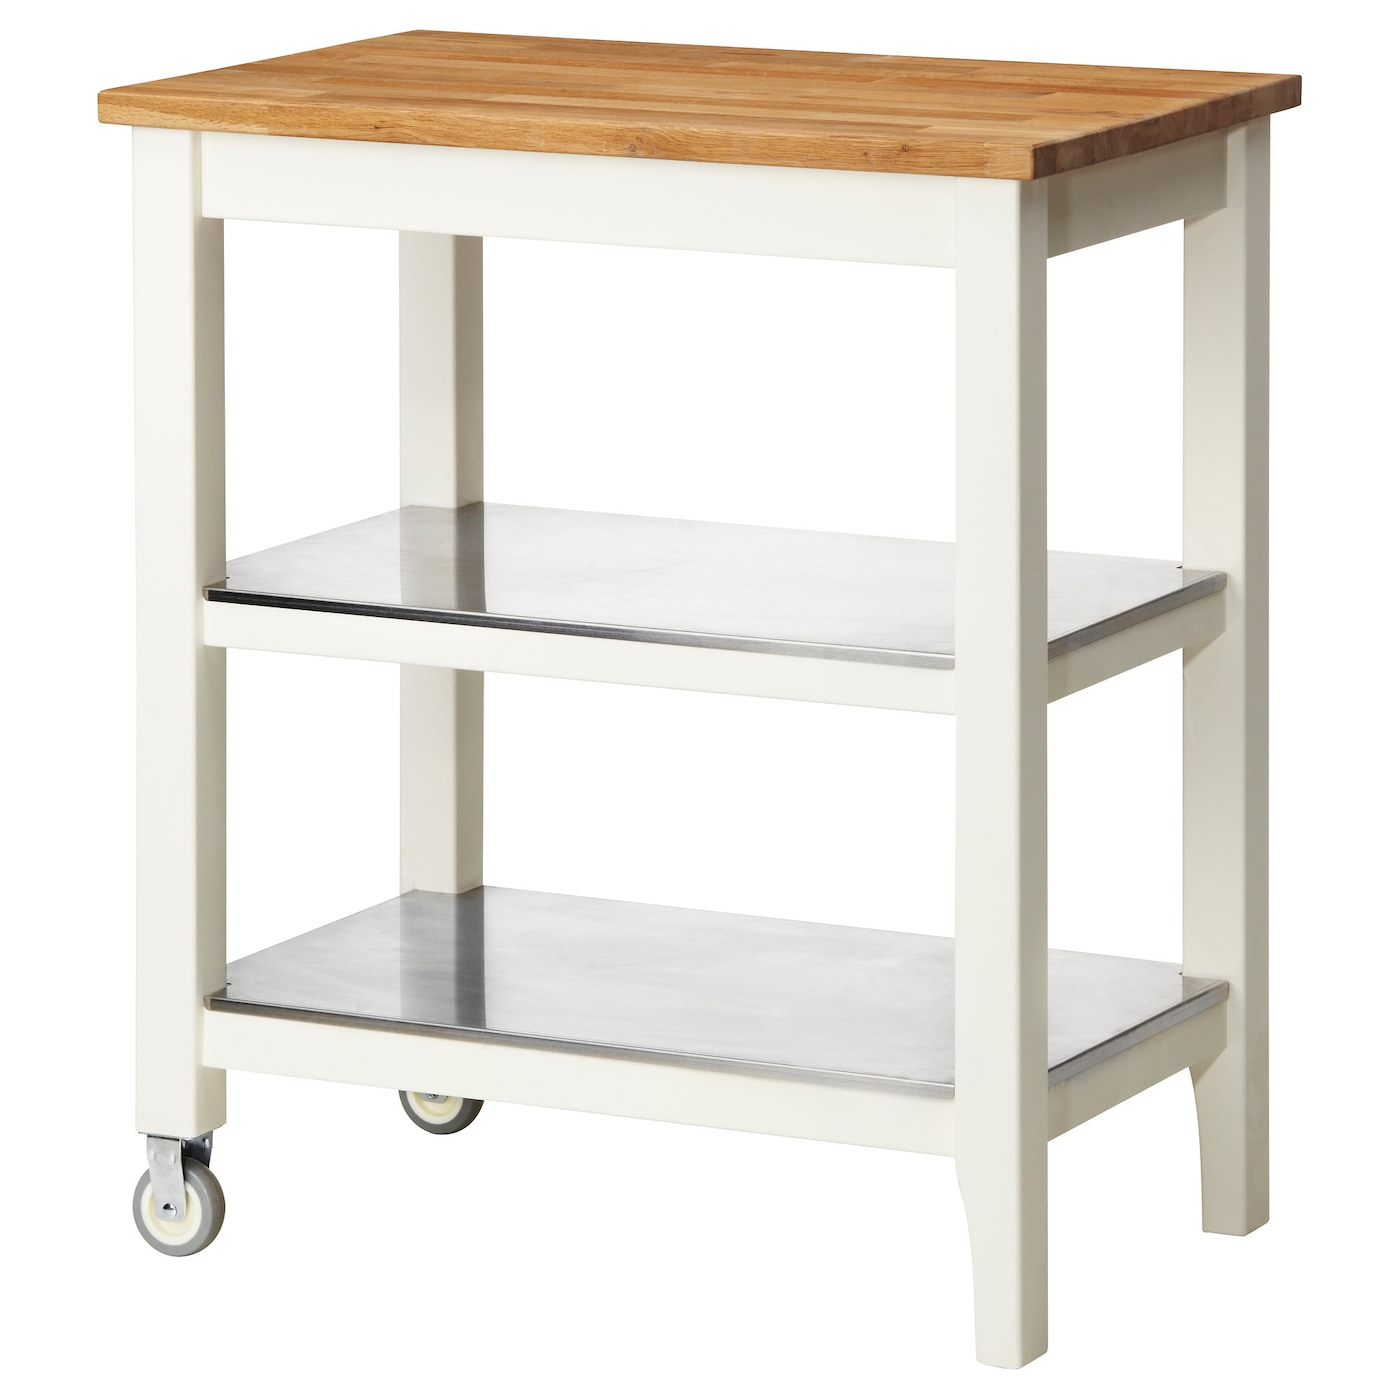 with storage enchanting island kitchen islands articles ideas also rolling ikea